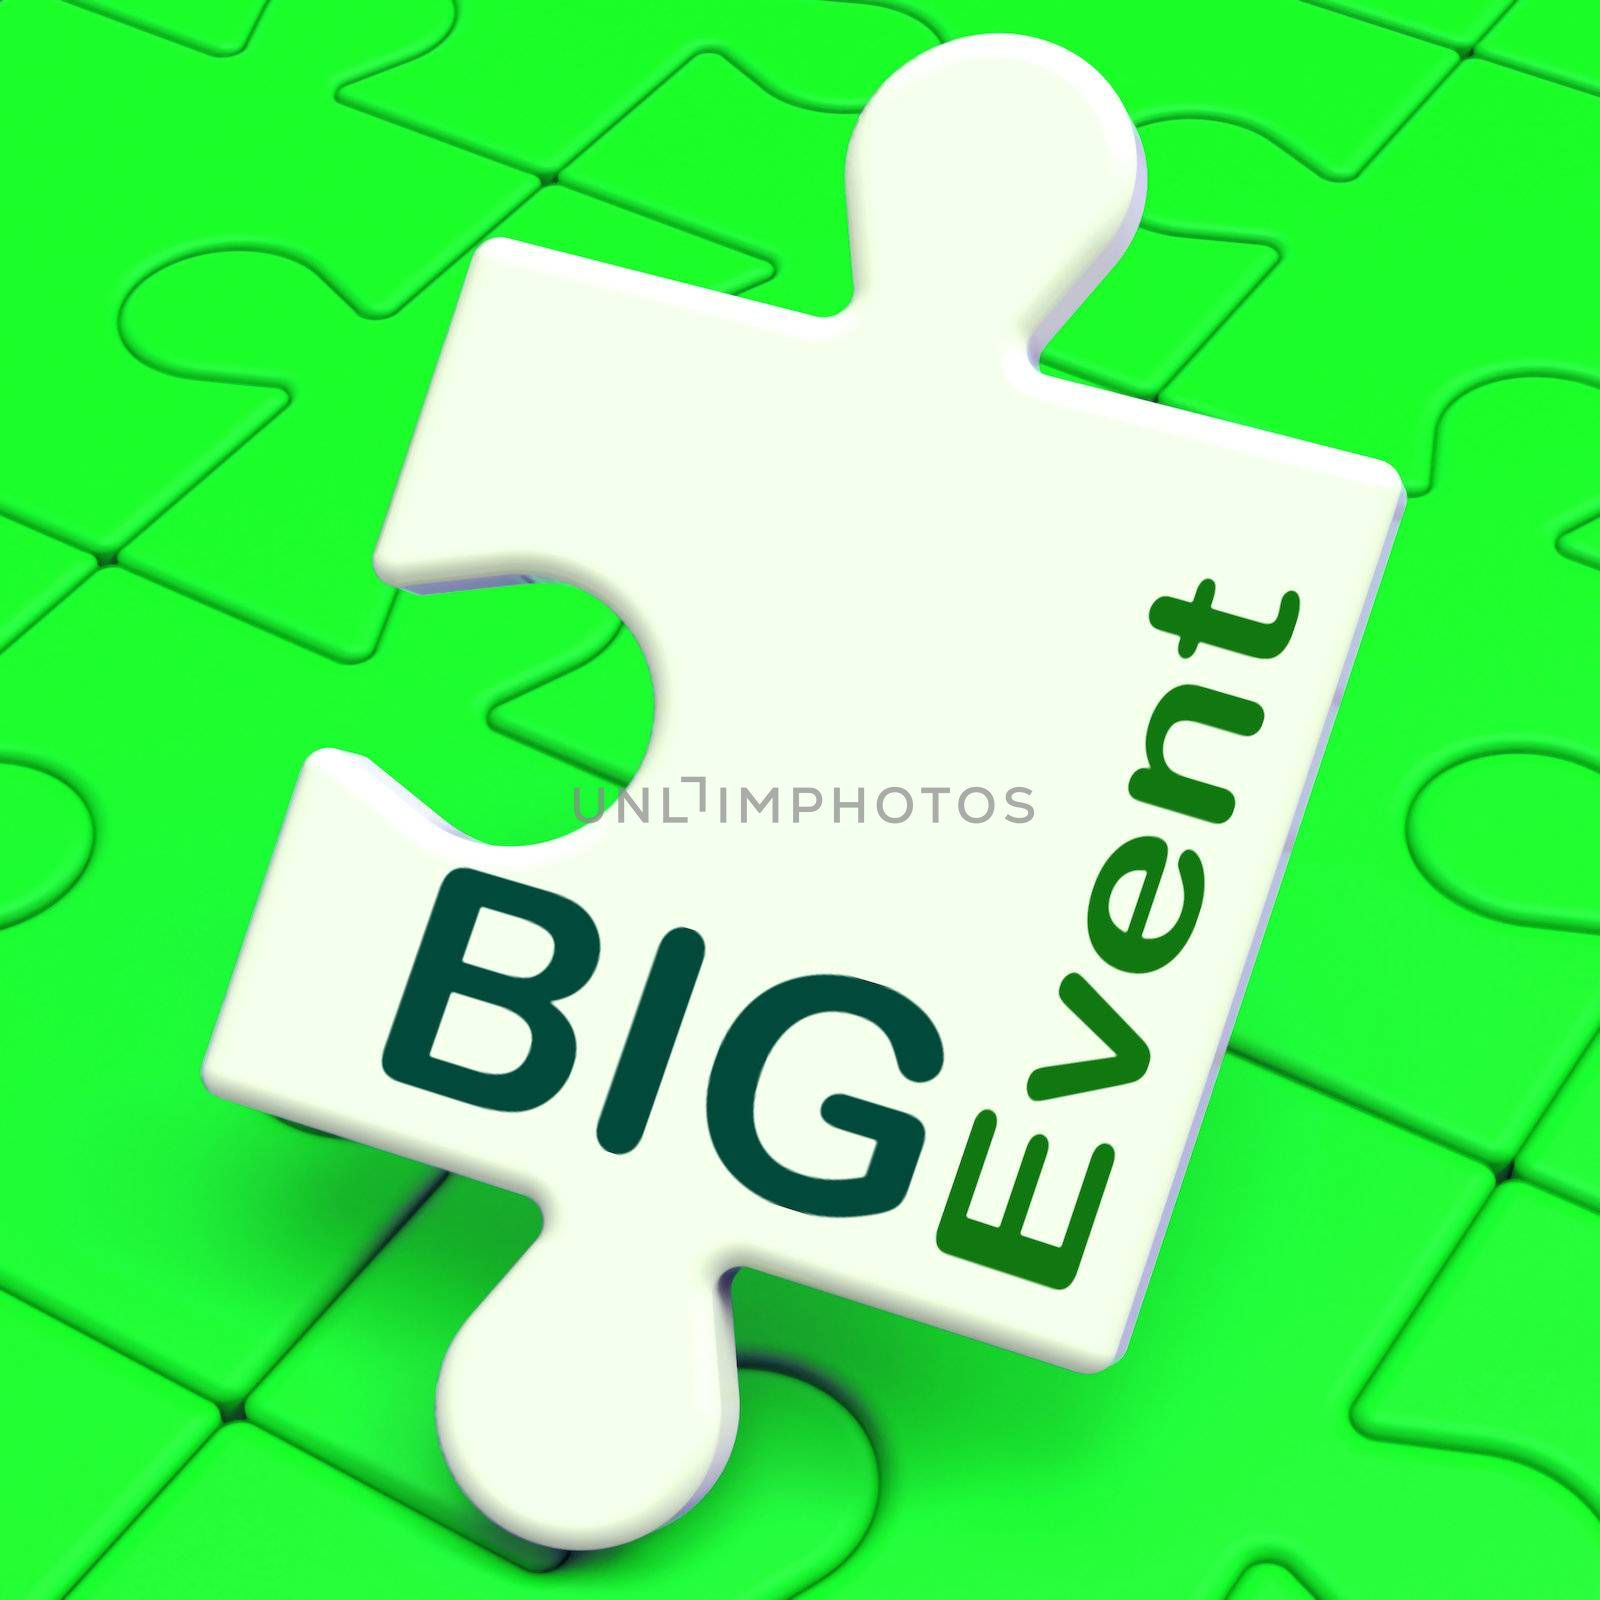 Big Event Puzzle Showing Celebration Occasion And Performance